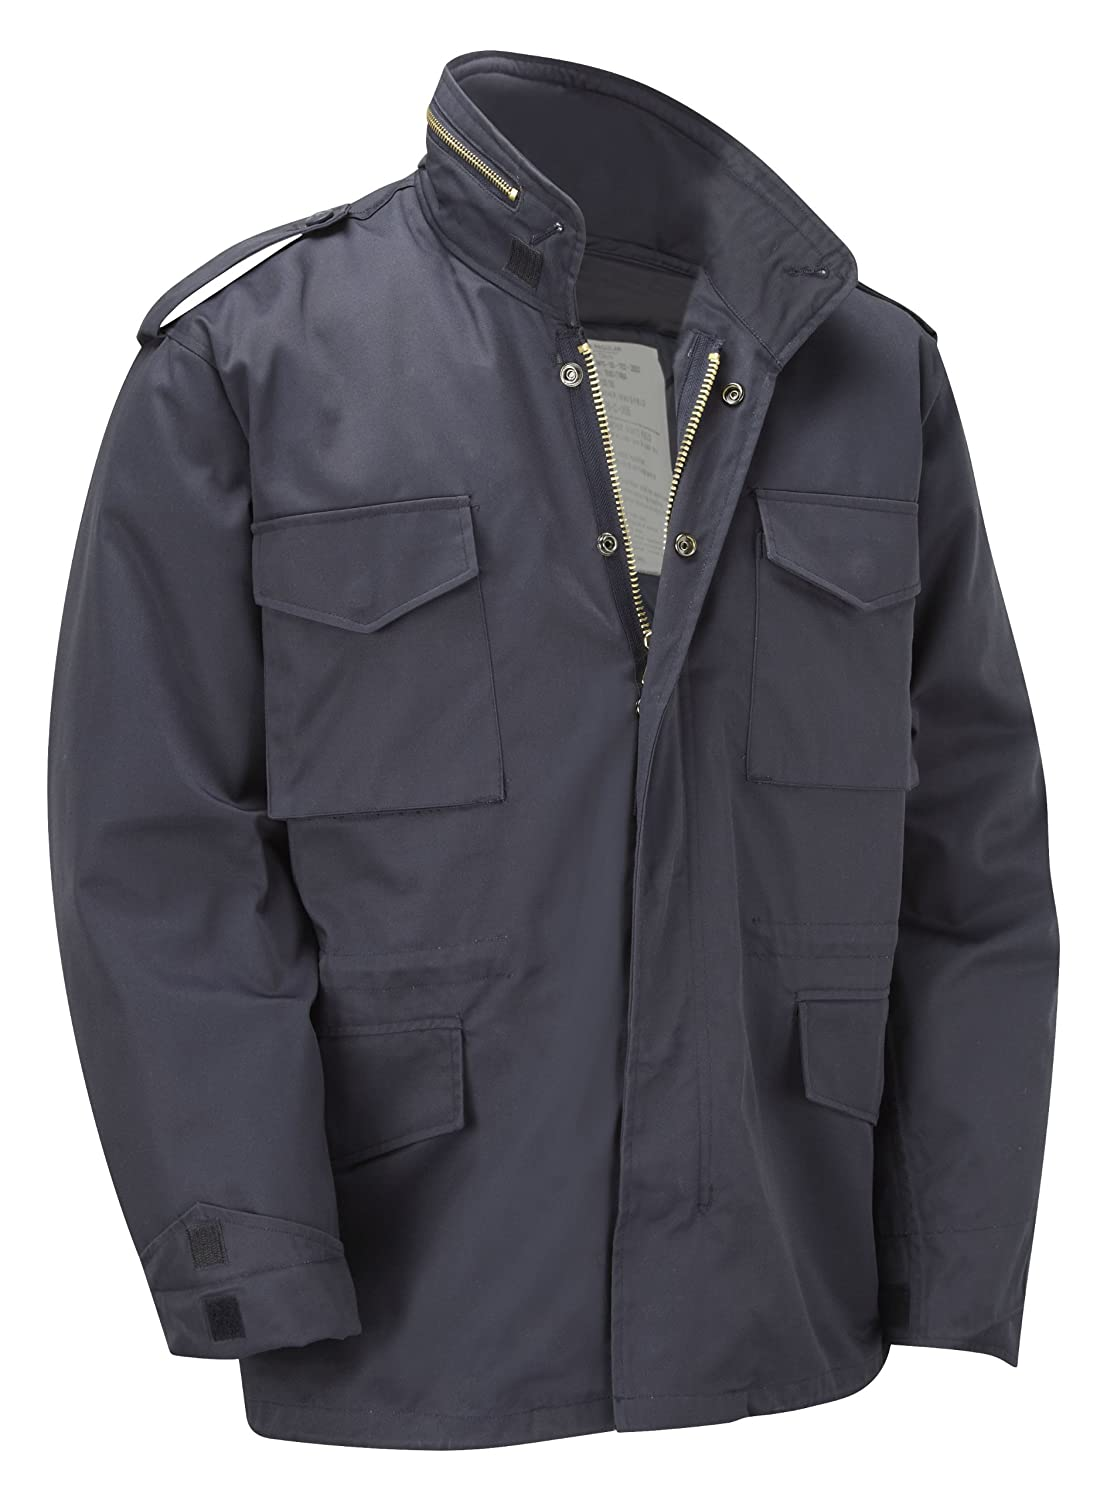 M65 Military Field Jacket With Removable Quilted Inner Liner - Navy